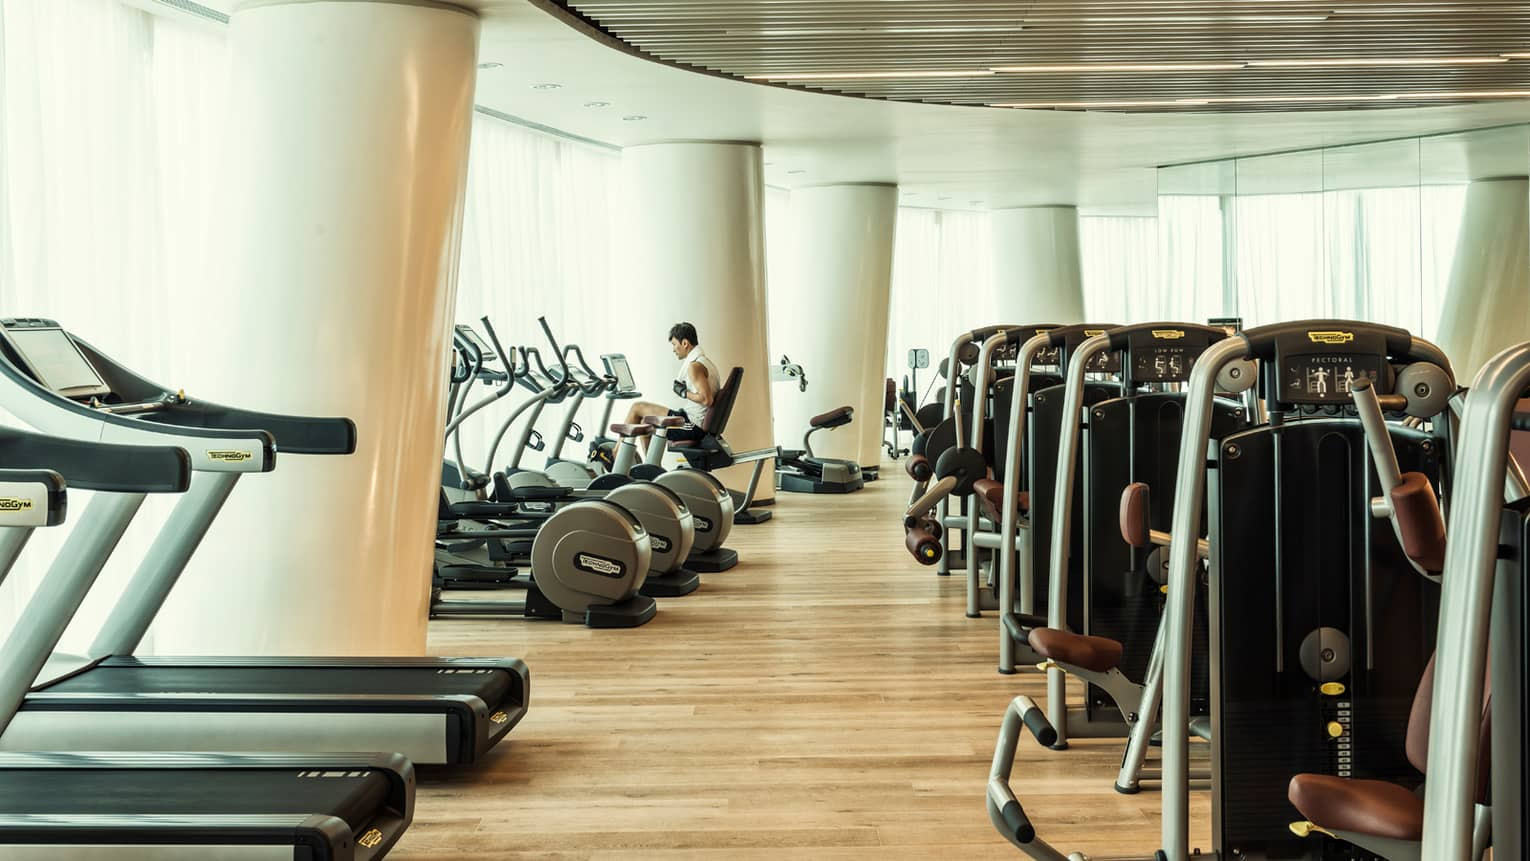 Cardio machines in bright fitness room with modern white pillars, man on bicycle machine